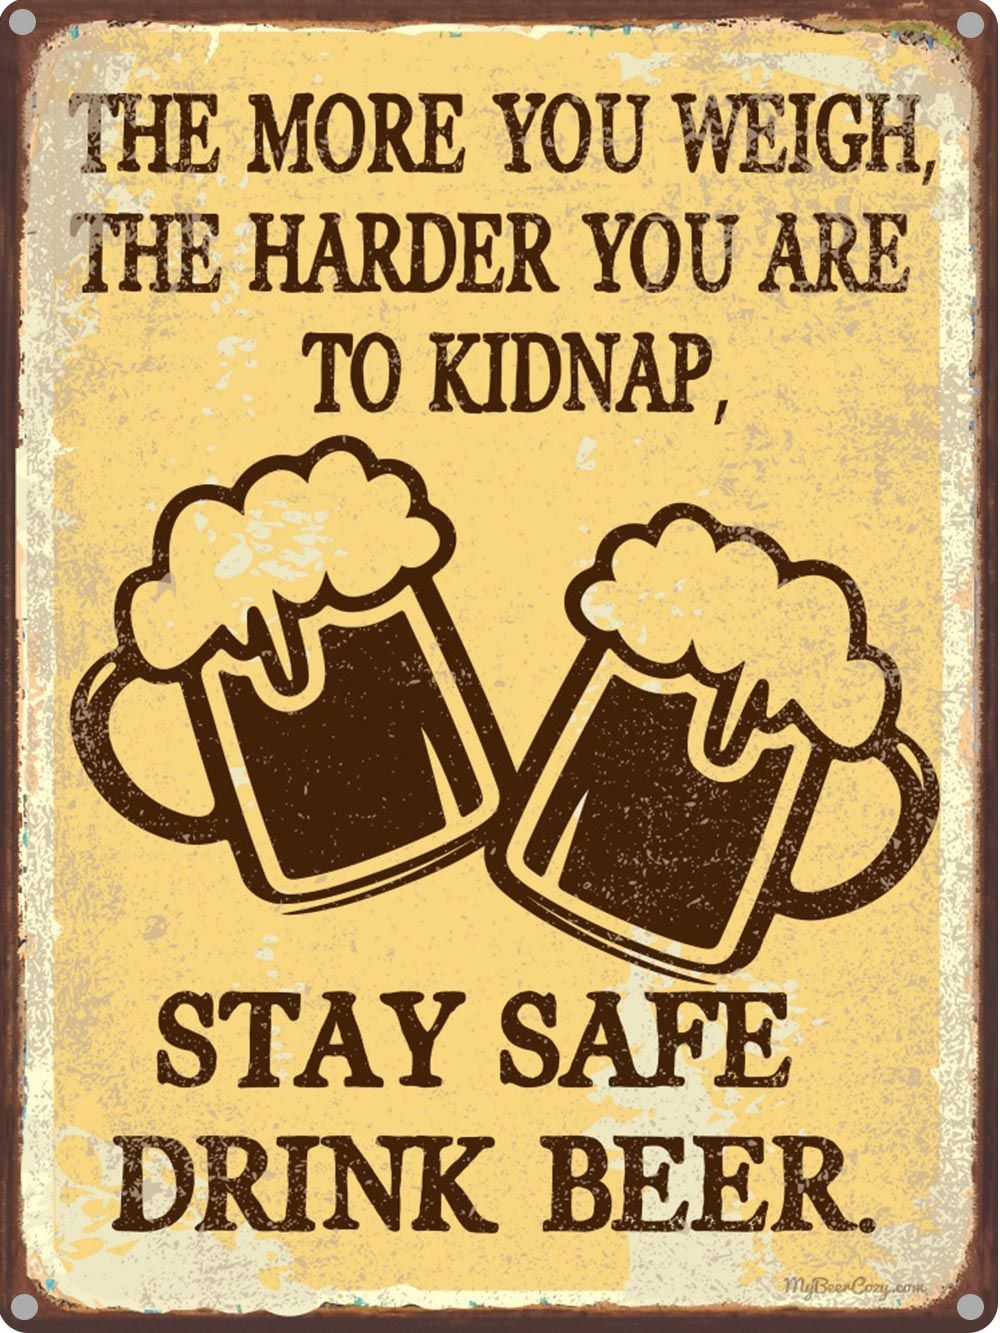 Funny Beer Quotes Beer Decor Metal Signs For Home Business Beer Quotes Funny Beer Humor Beer Quotes